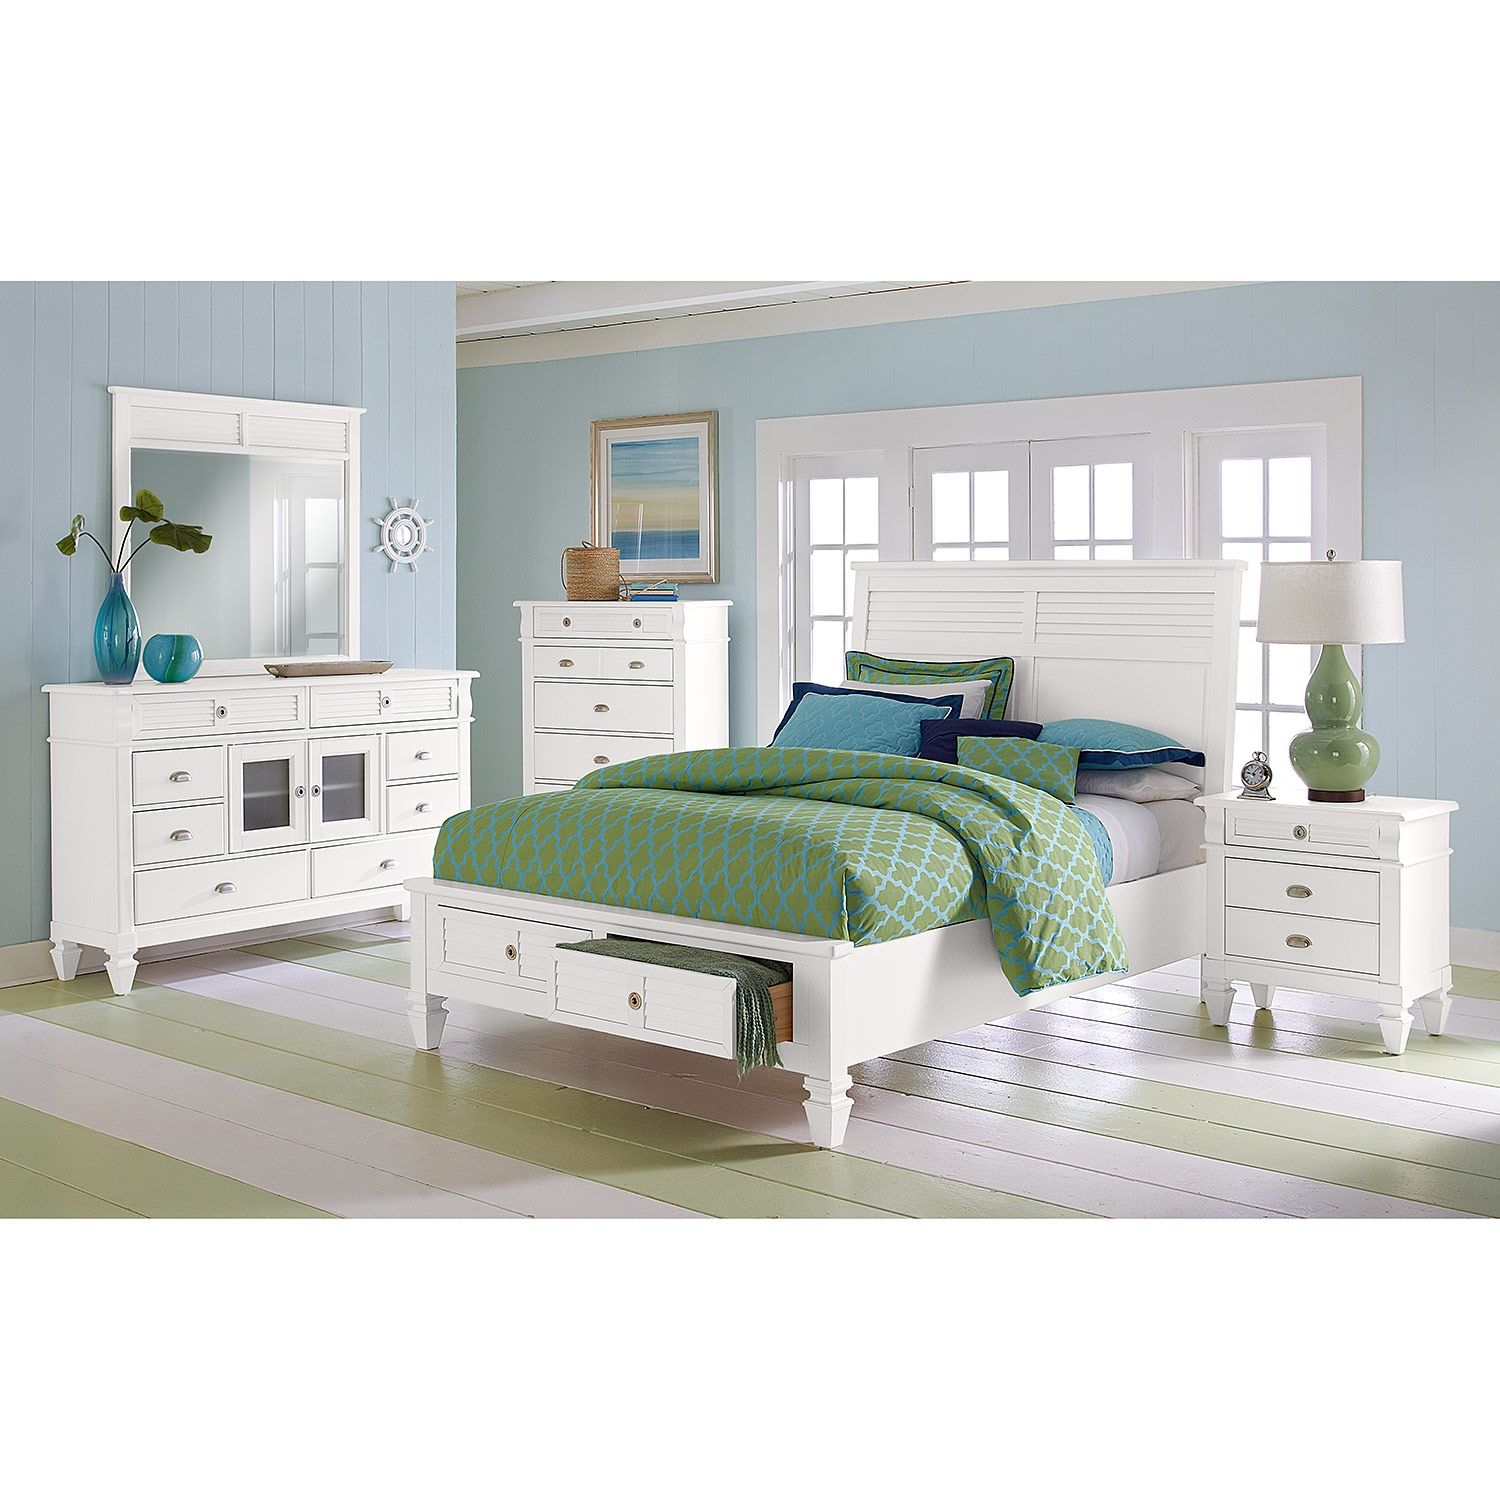 Charleston Bay White Ii Bedroom Queen Storage Bed American Signature Furniture